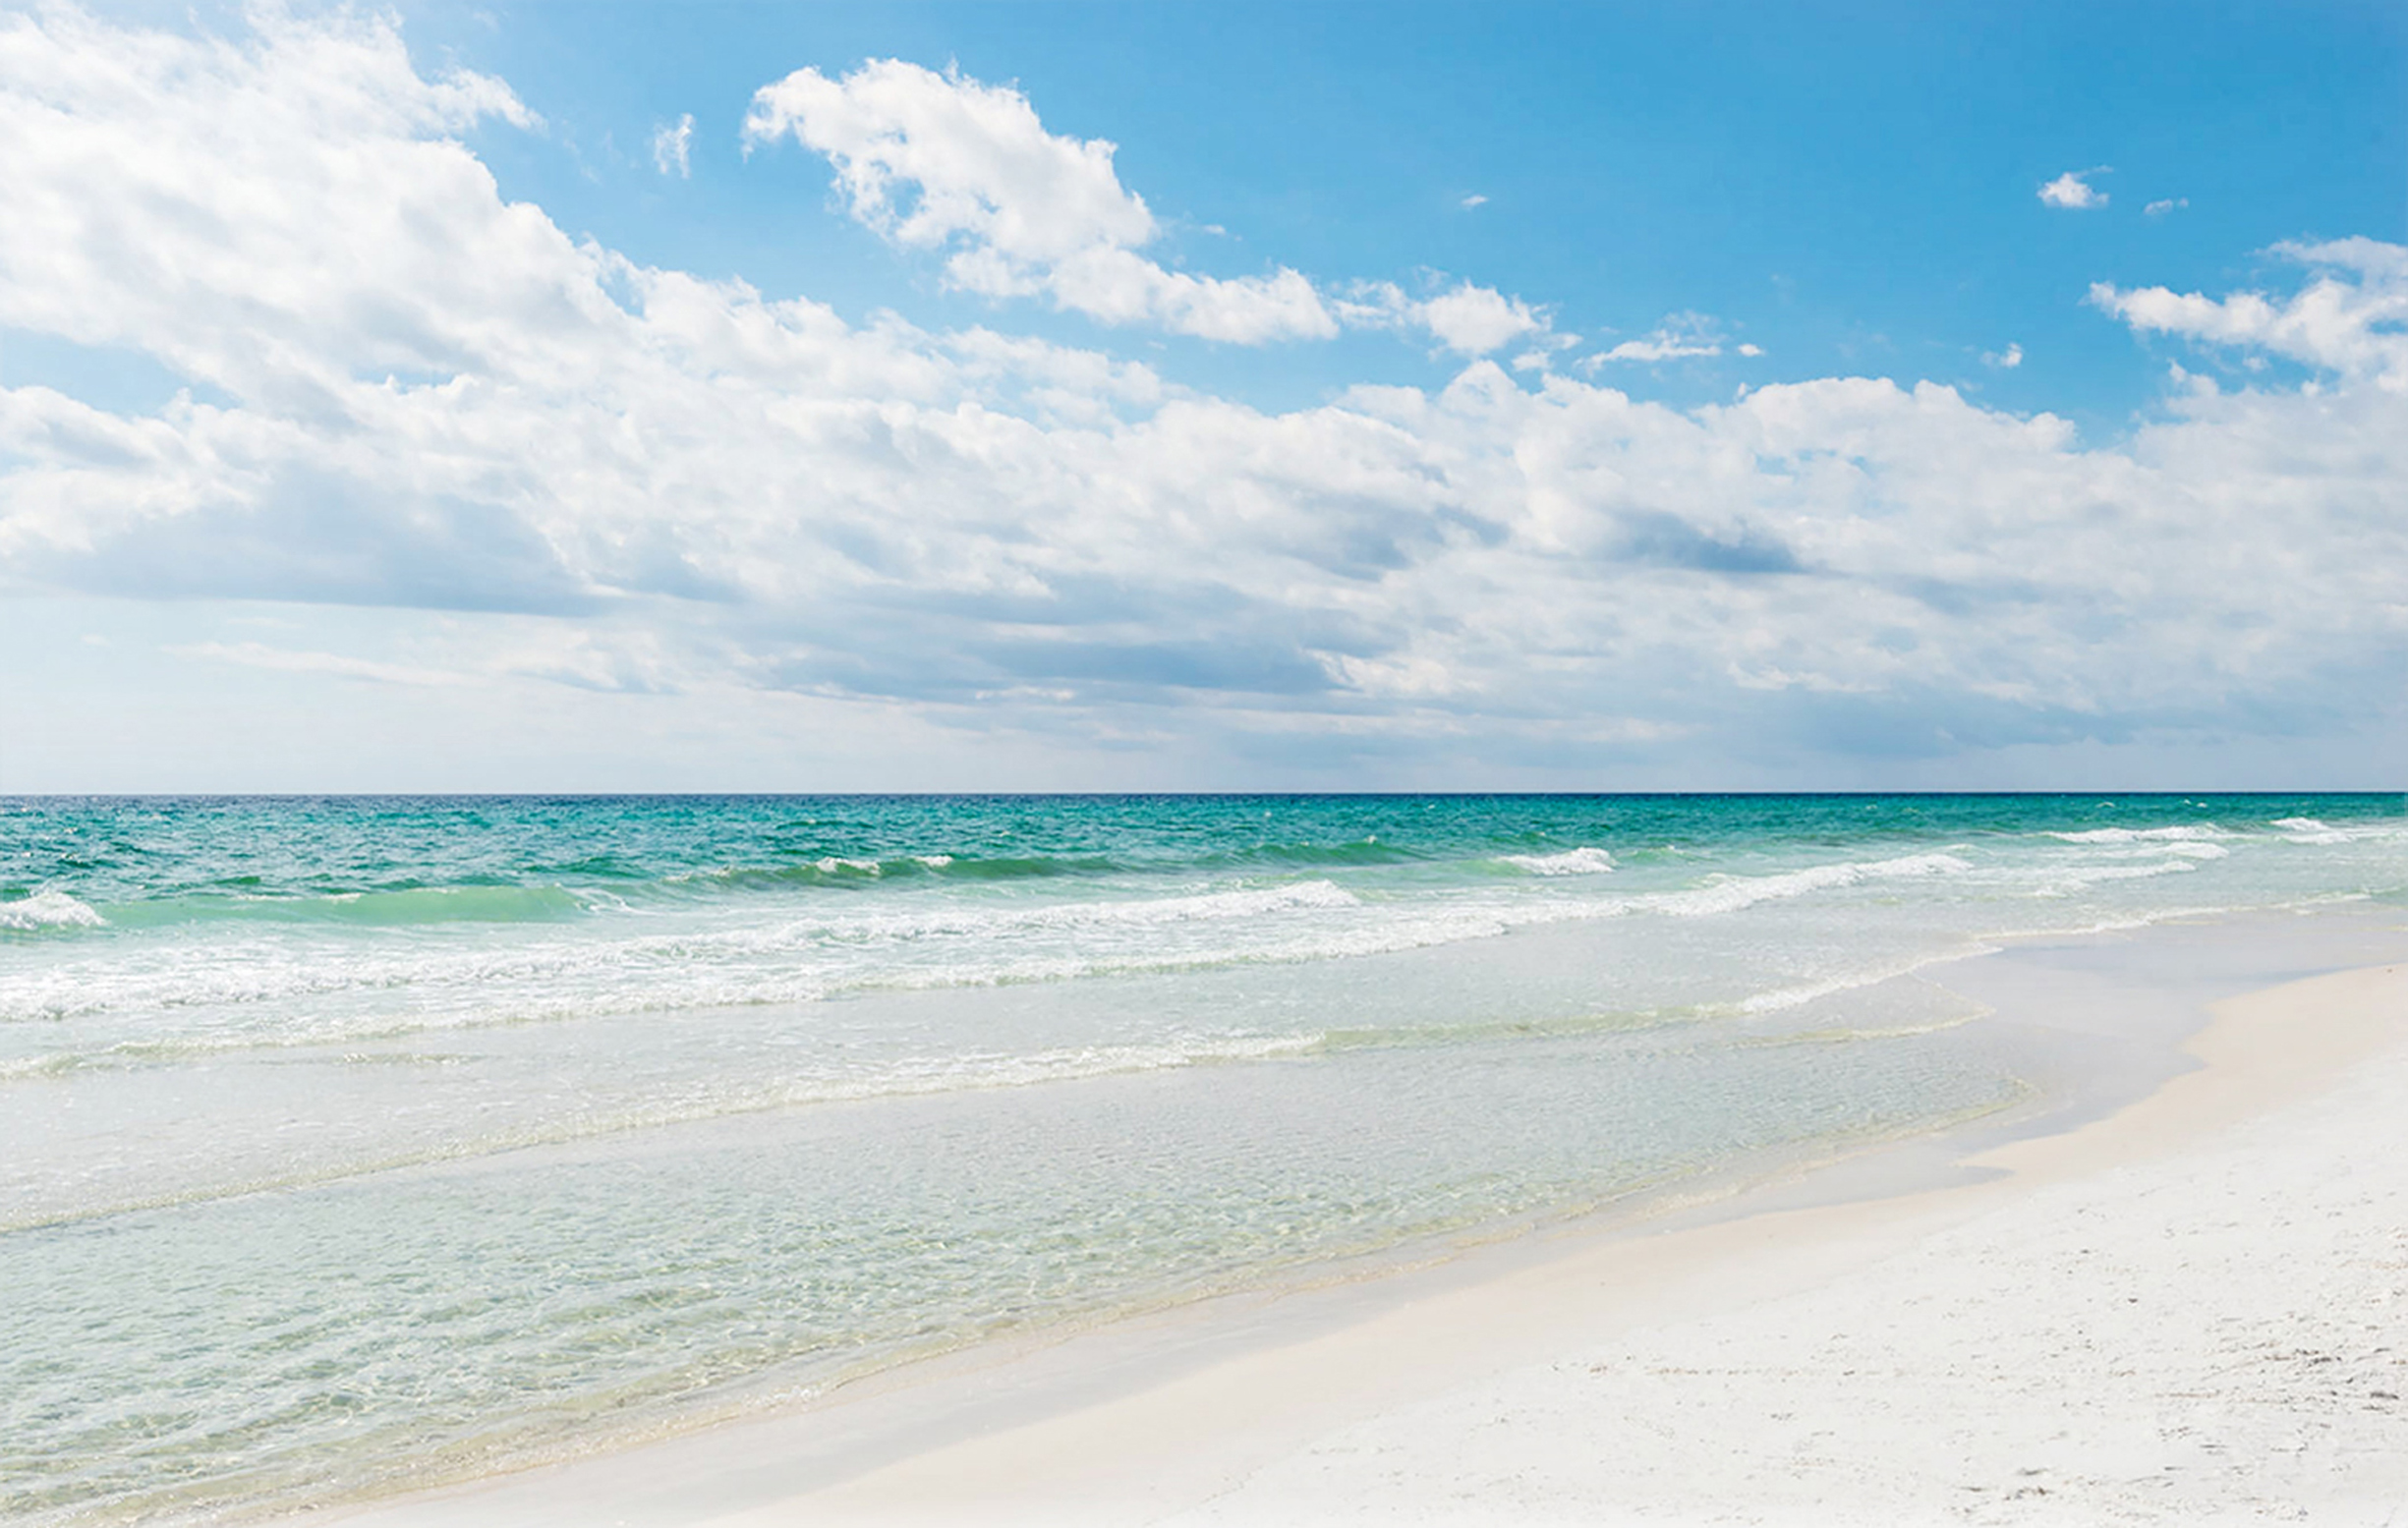 sandestin beach in florida